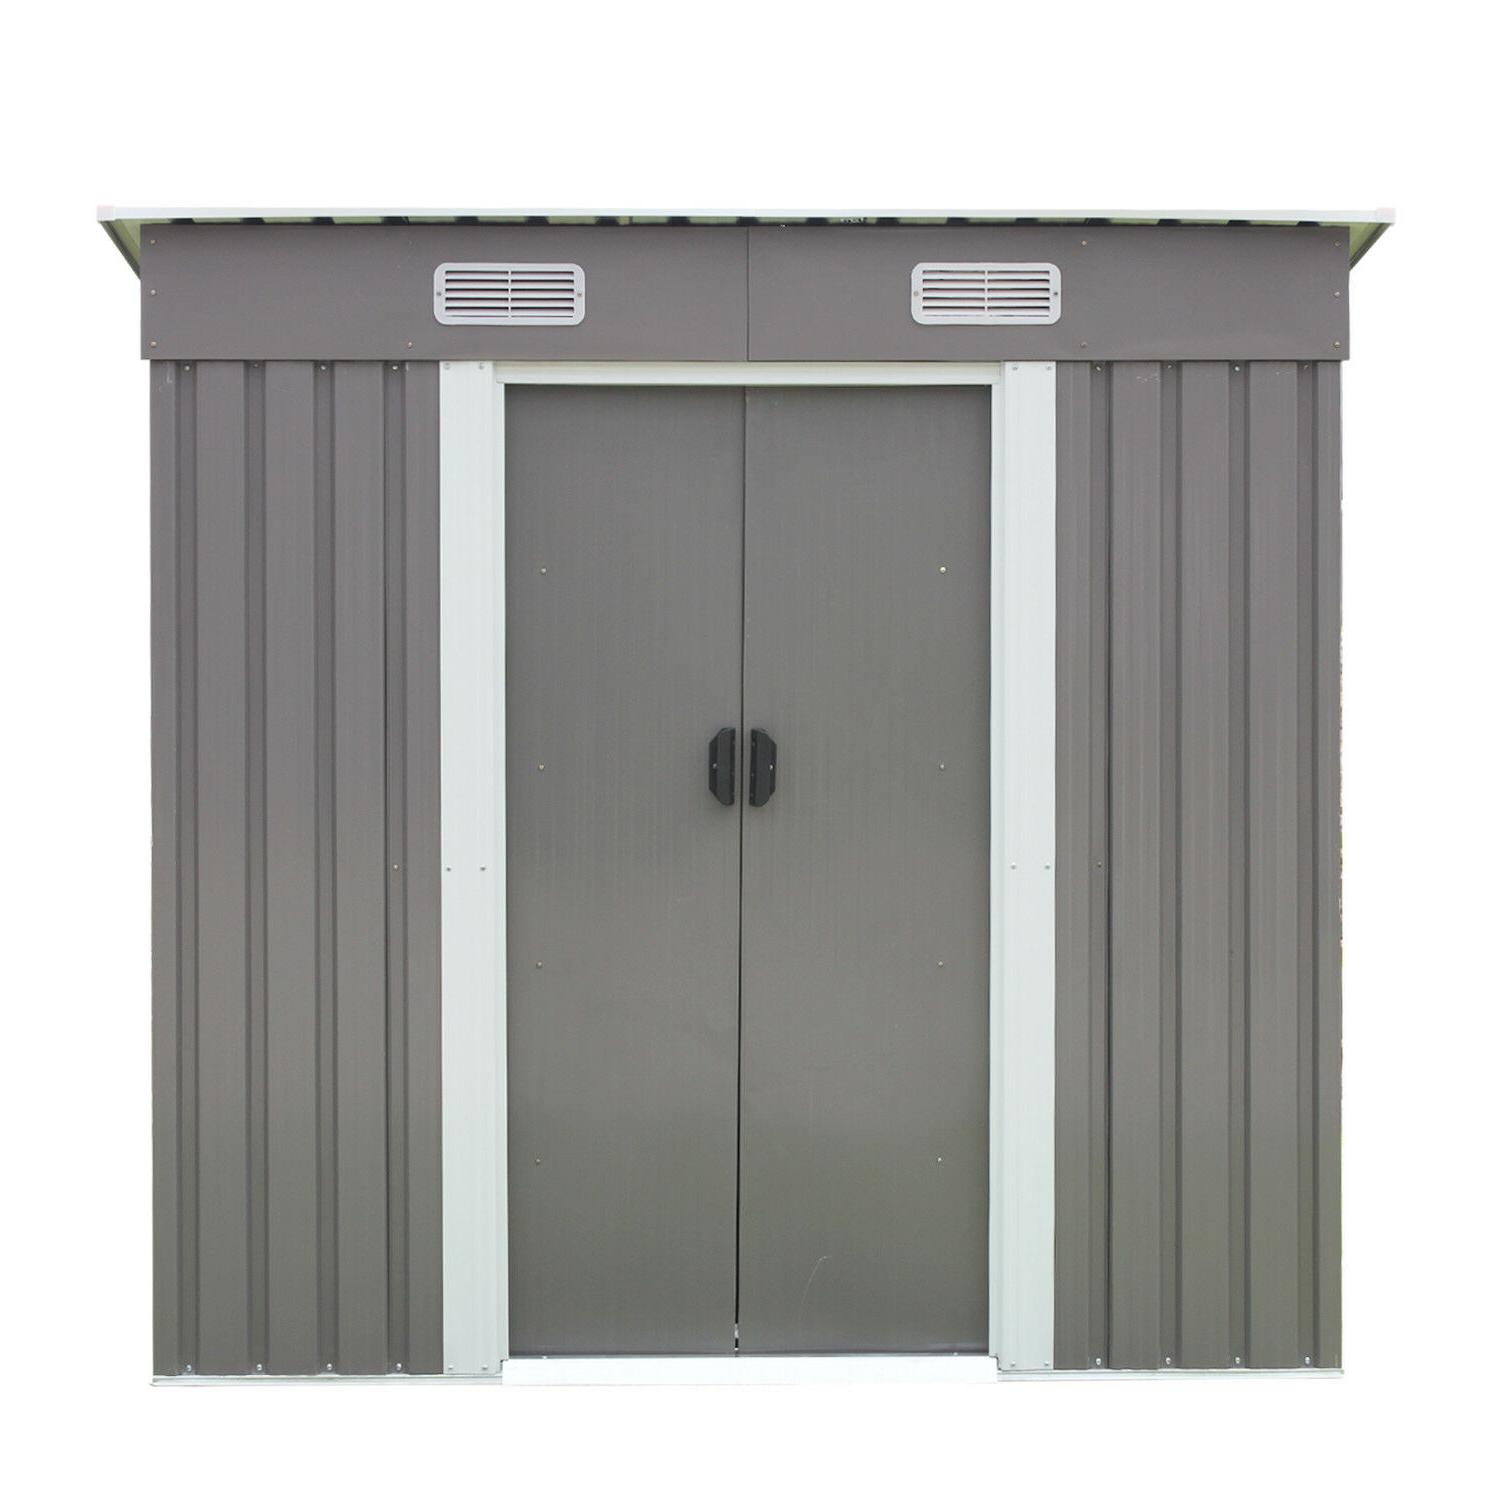 6' Storage Utility Shed Tool Lawn Gray